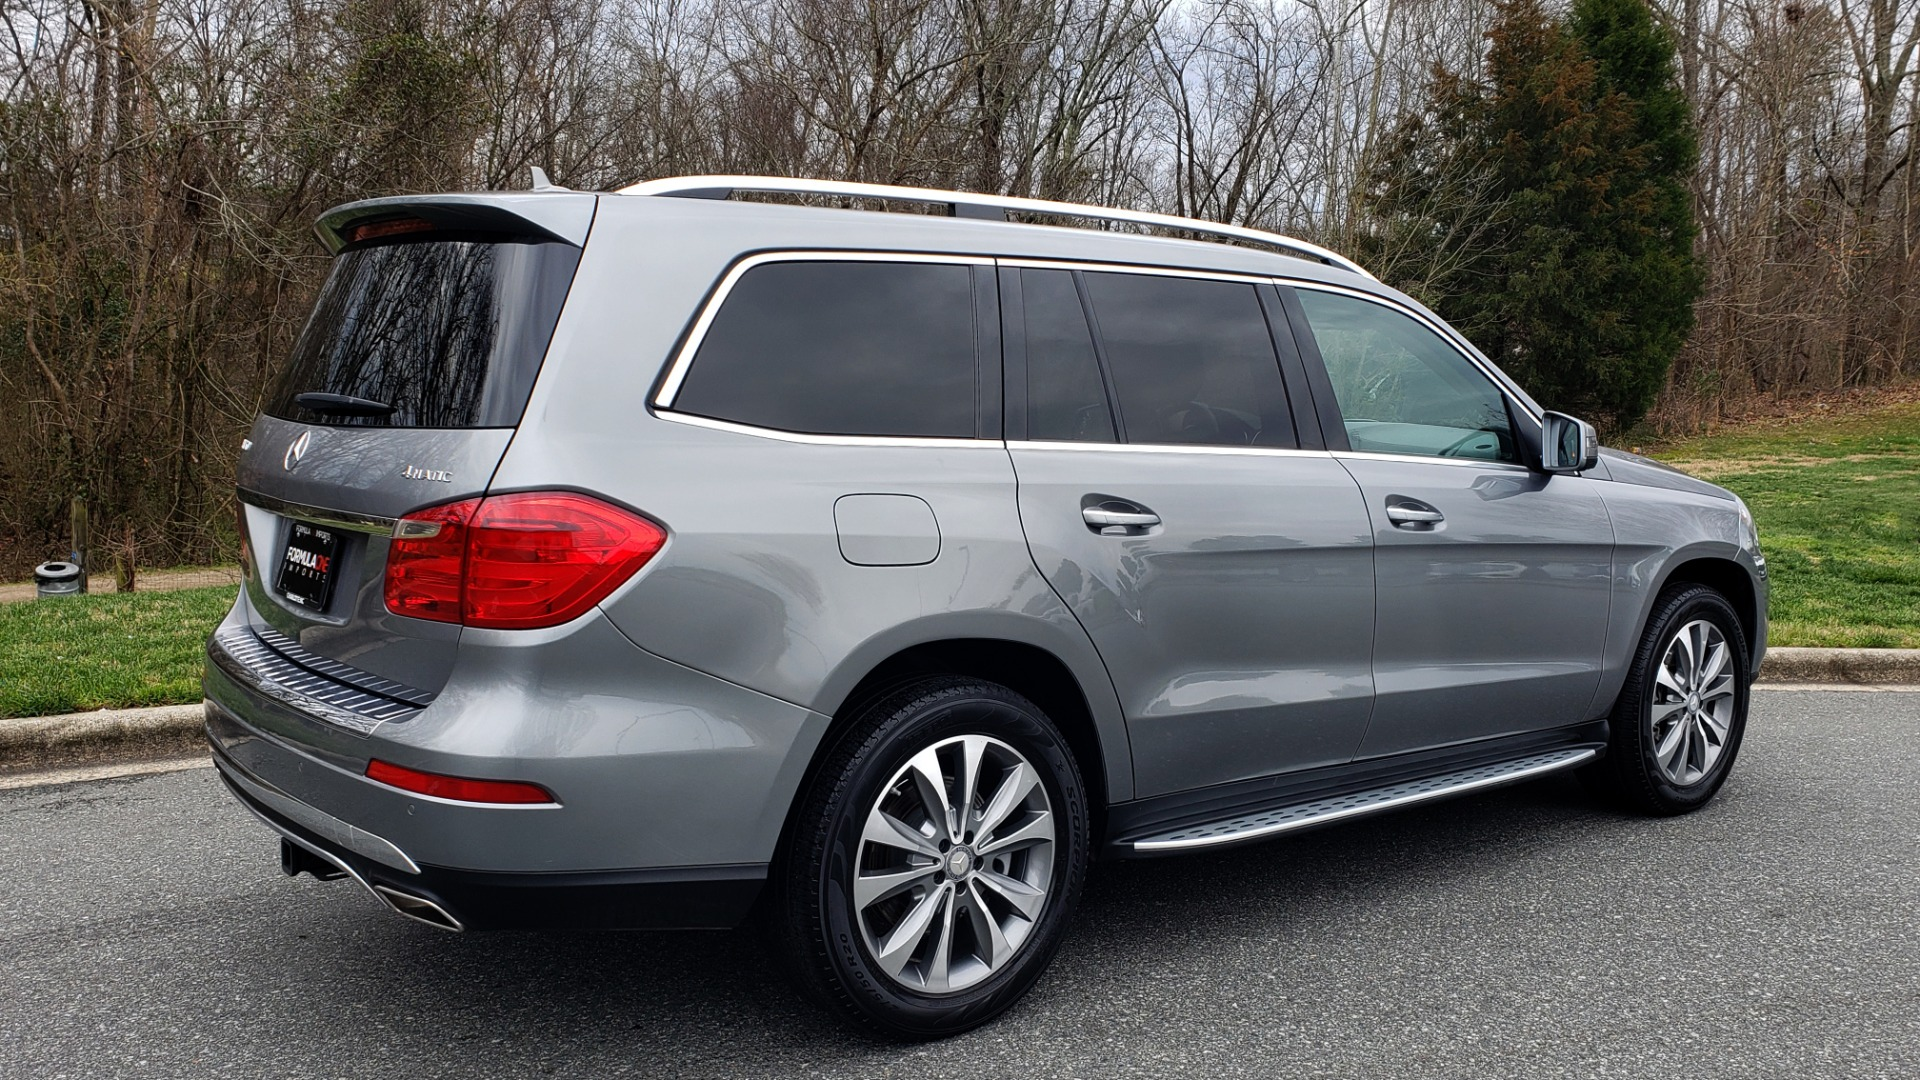 Used 2014 Mercedes-Benz GL-Class GL 450 4MATIC PREMIUM / NAV / PANO-ROOF / HK SND / 3-ROW for sale Sold at Formula Imports in Charlotte NC 28227 6